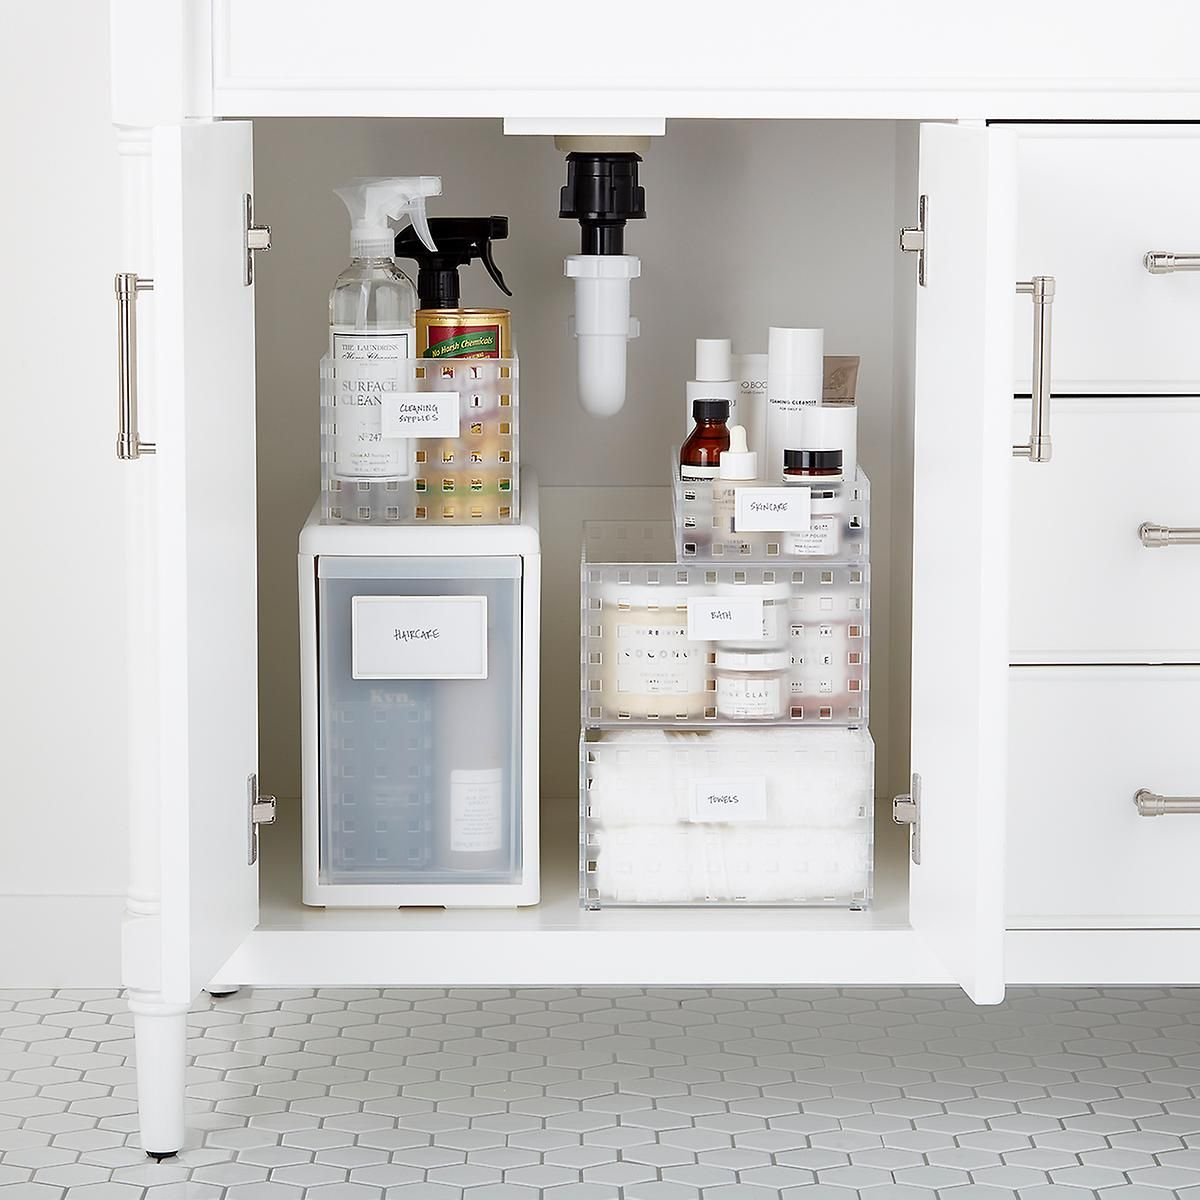 Like It Under The Sink Starter Kit In 2020 Container Store Store Interiors Medicine Cabinet Organization